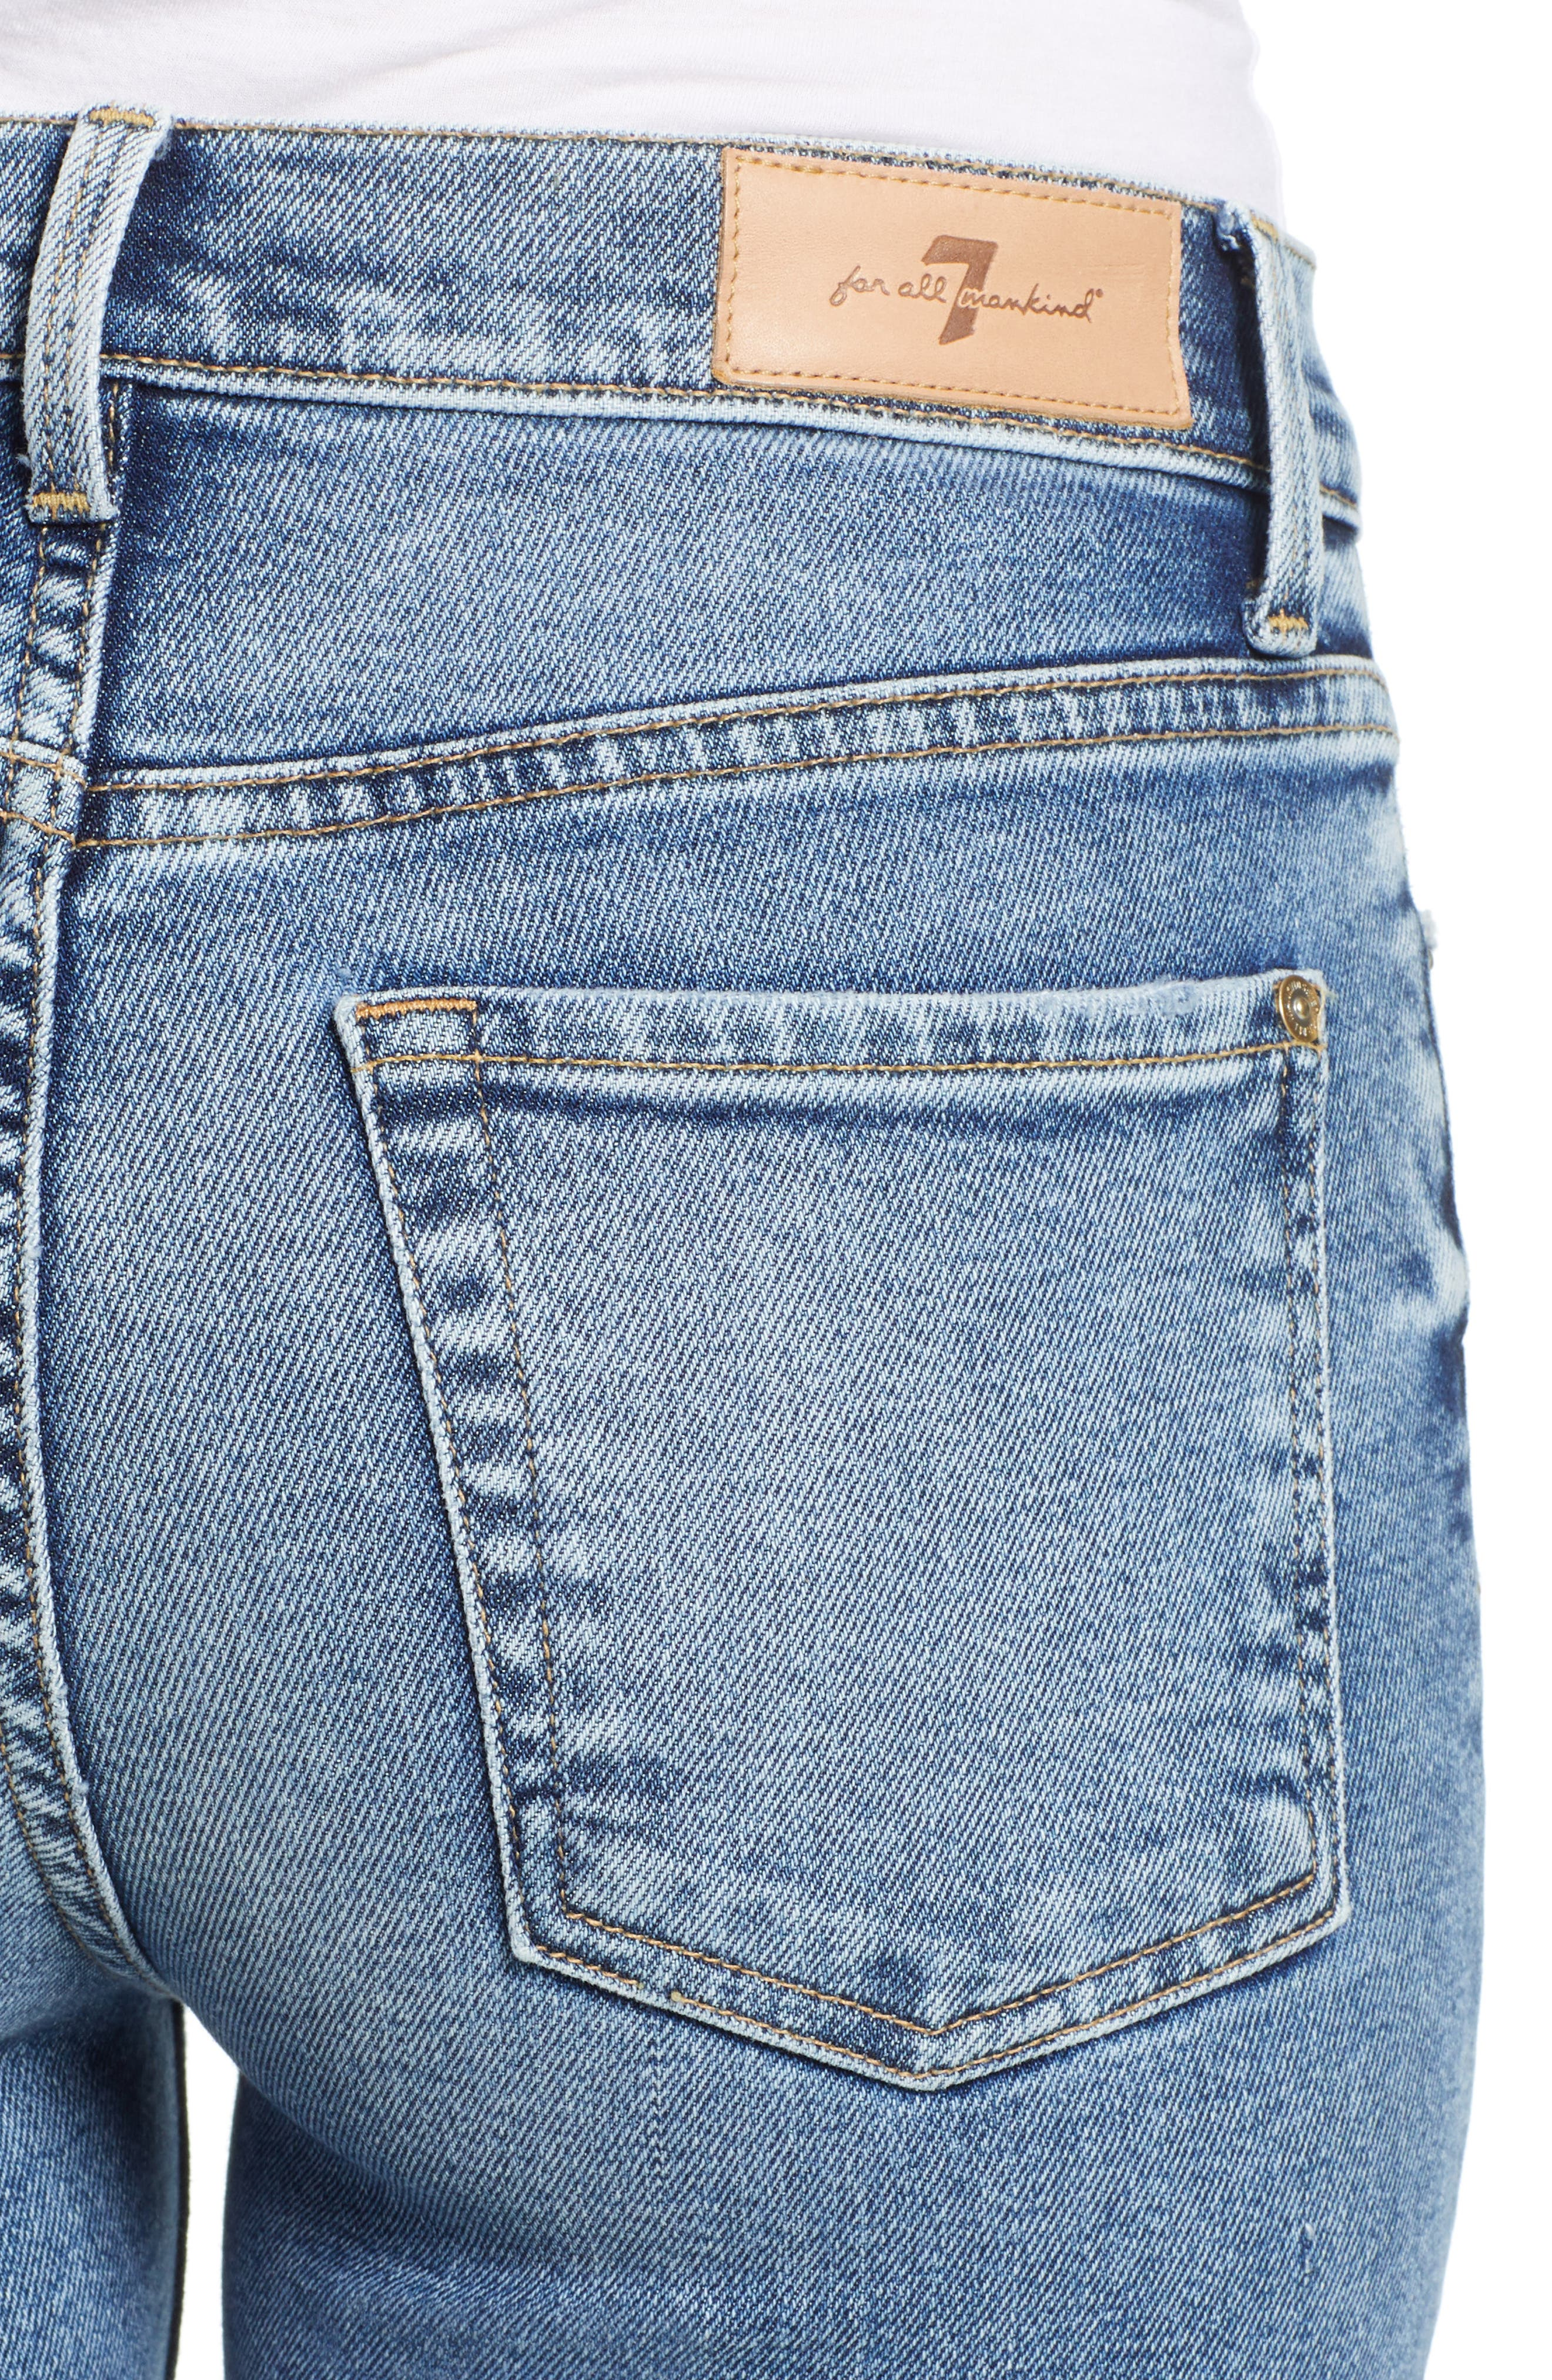 Luxe Vintage High Waist Ankle Skinny Jeans,                             Alternate thumbnail 4, color,                             LUXE VINTAGE MUSE